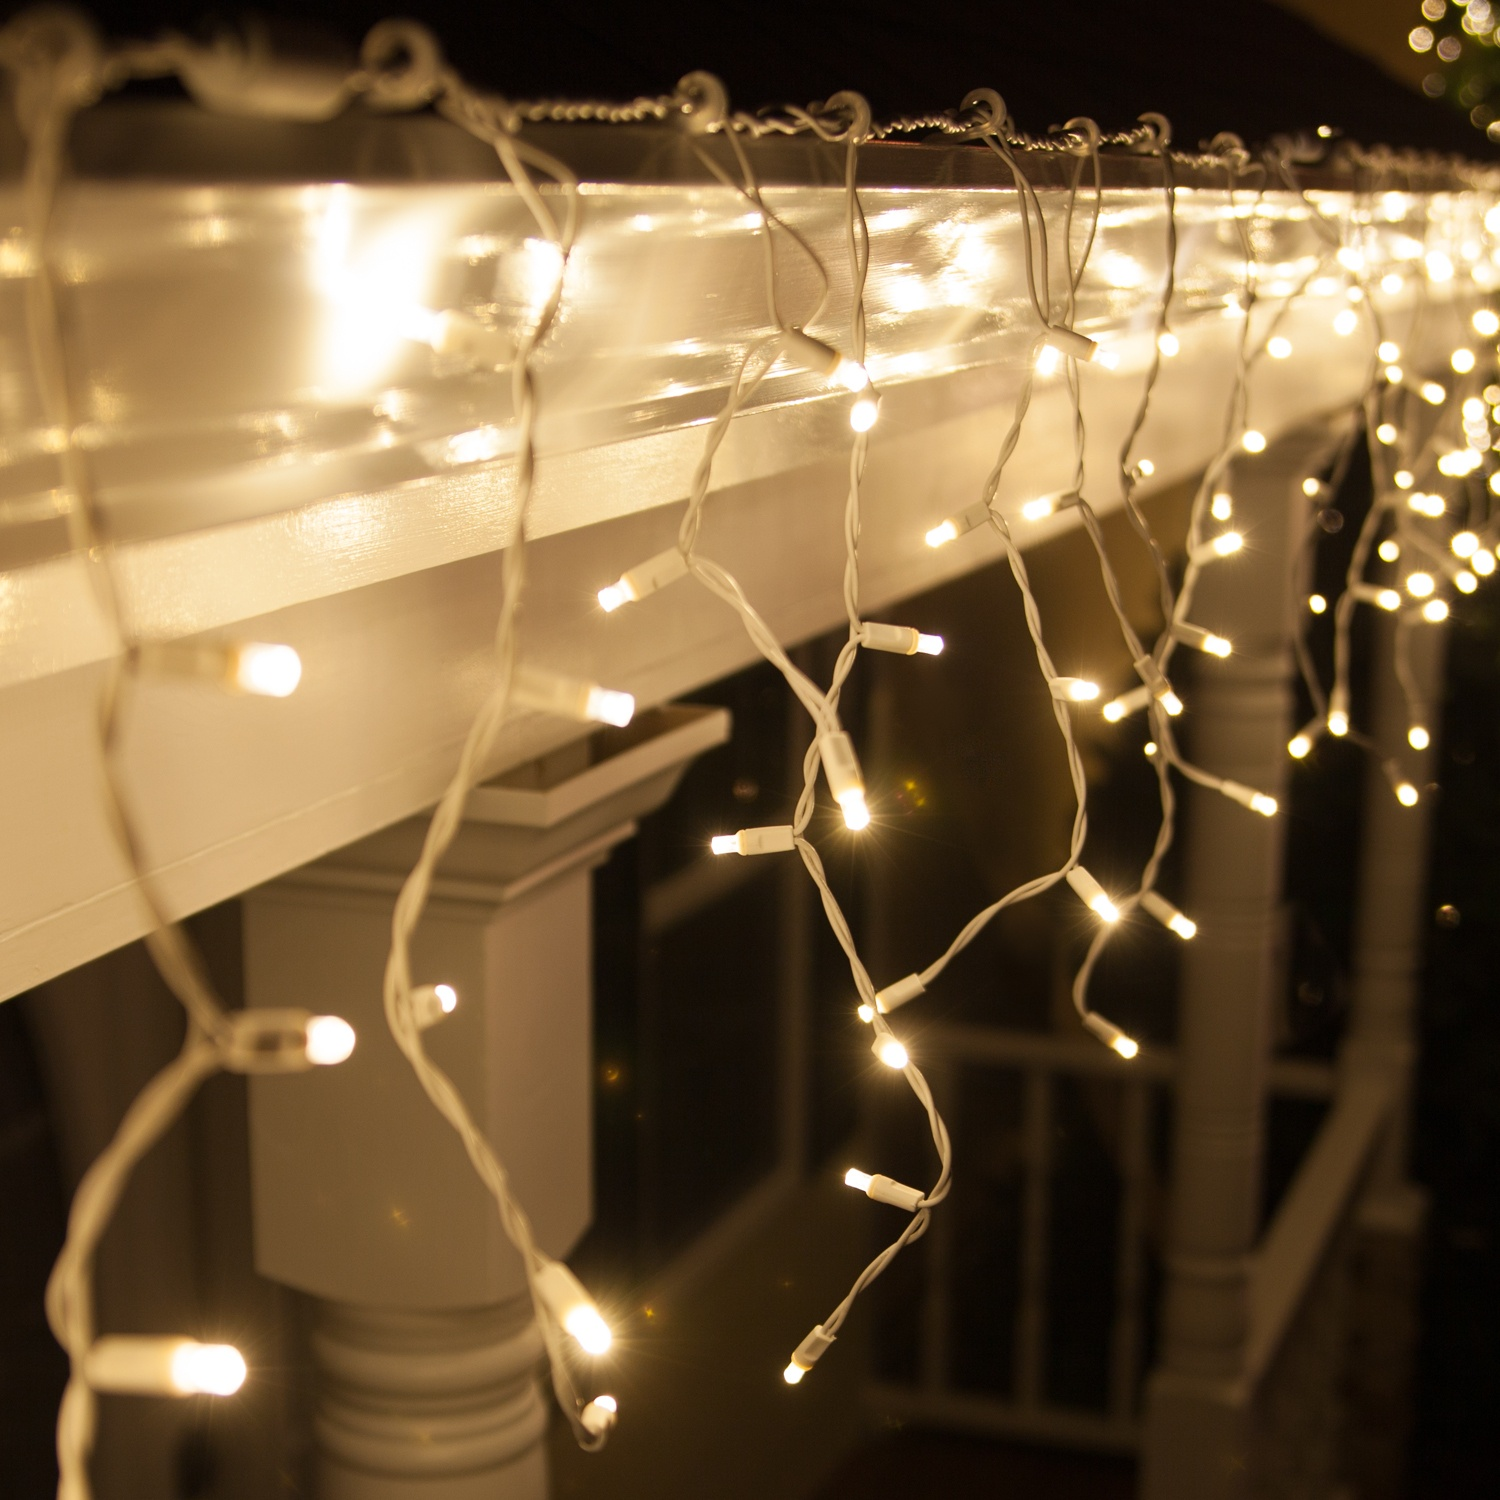 70 5mm led icicle lights warm white white wire yard envy for White twinkle christmas lights